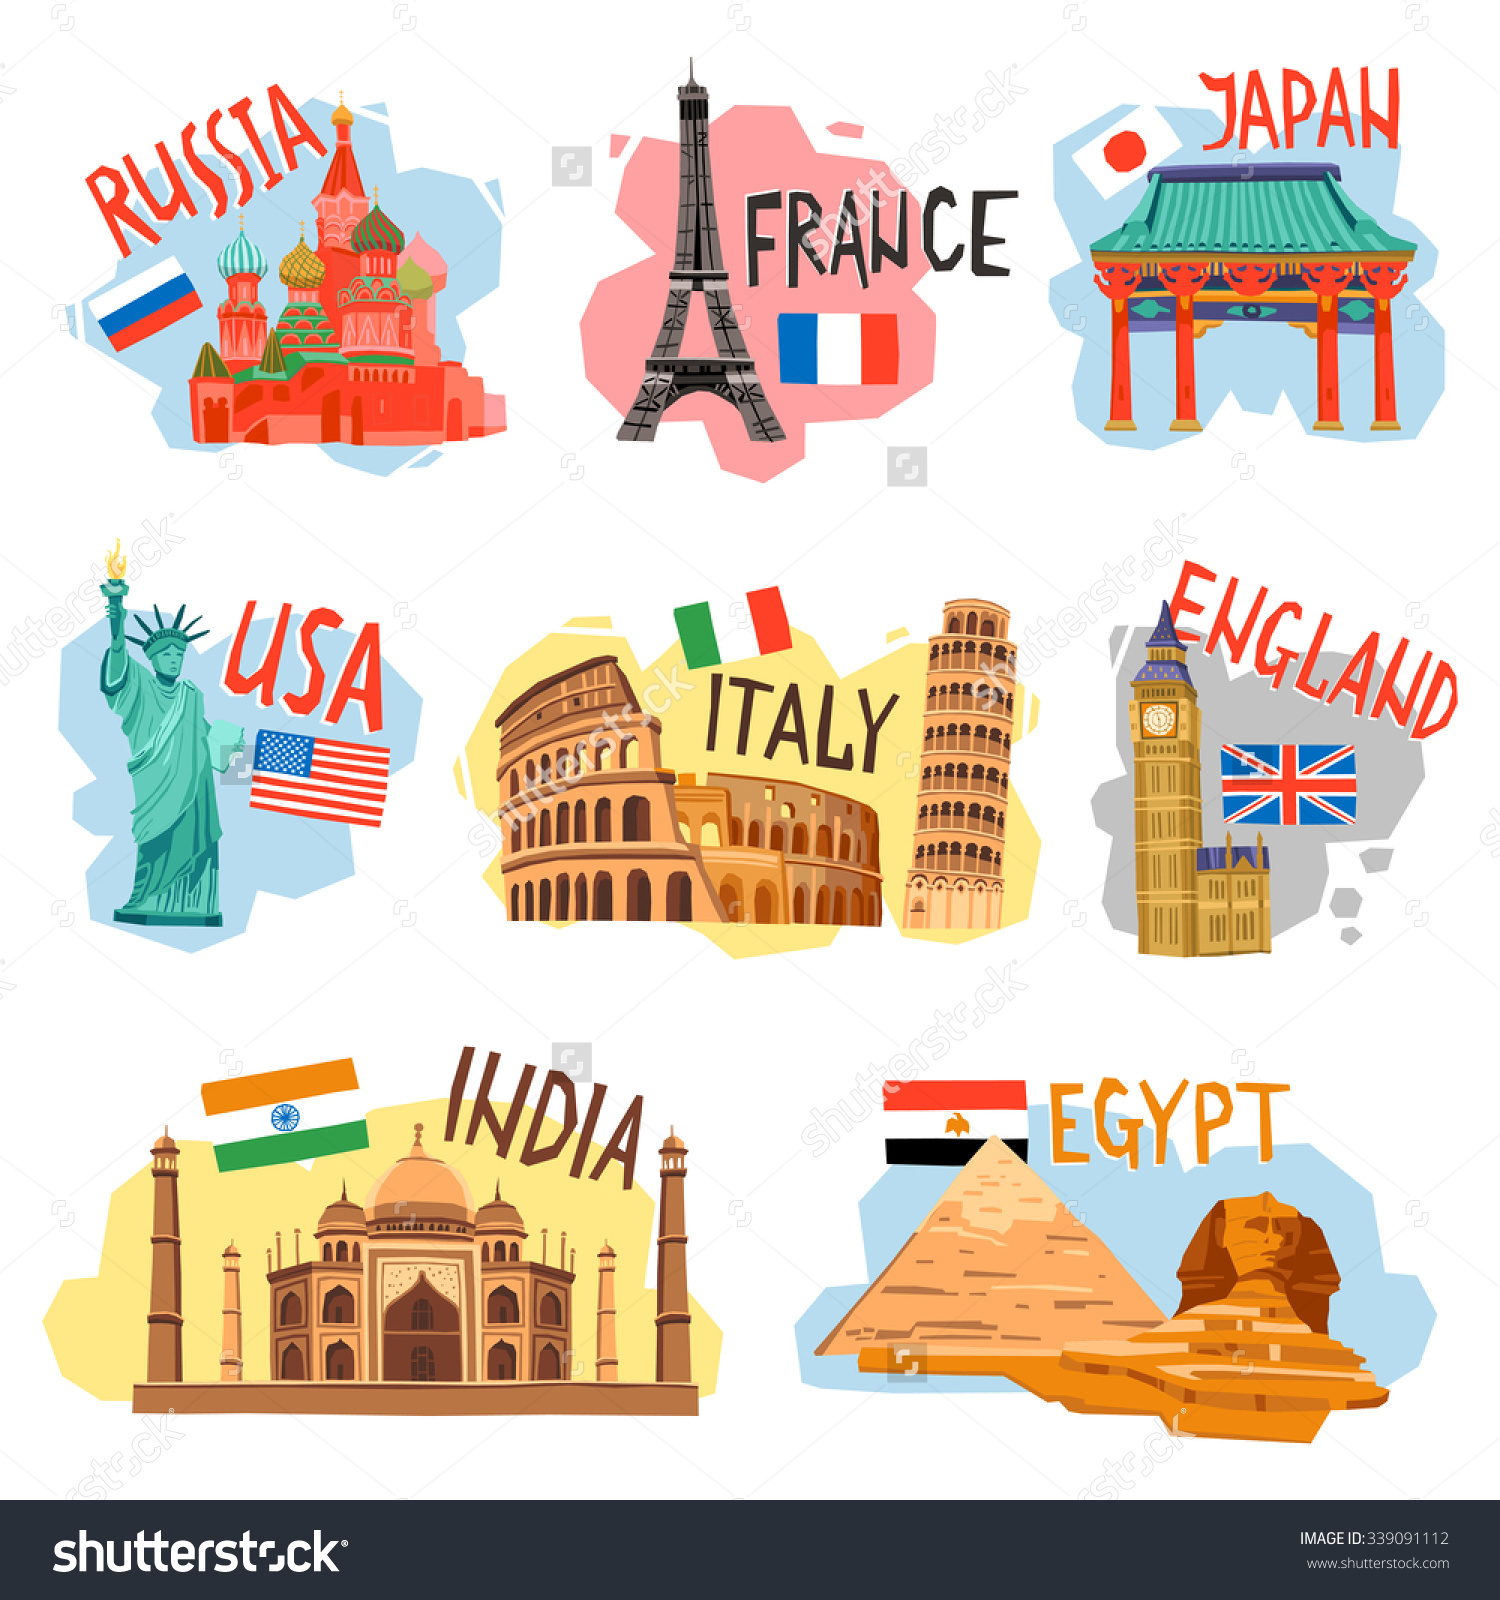 Vacation Sightseeing Tourism Travel Agencies Flat Stock Vector.